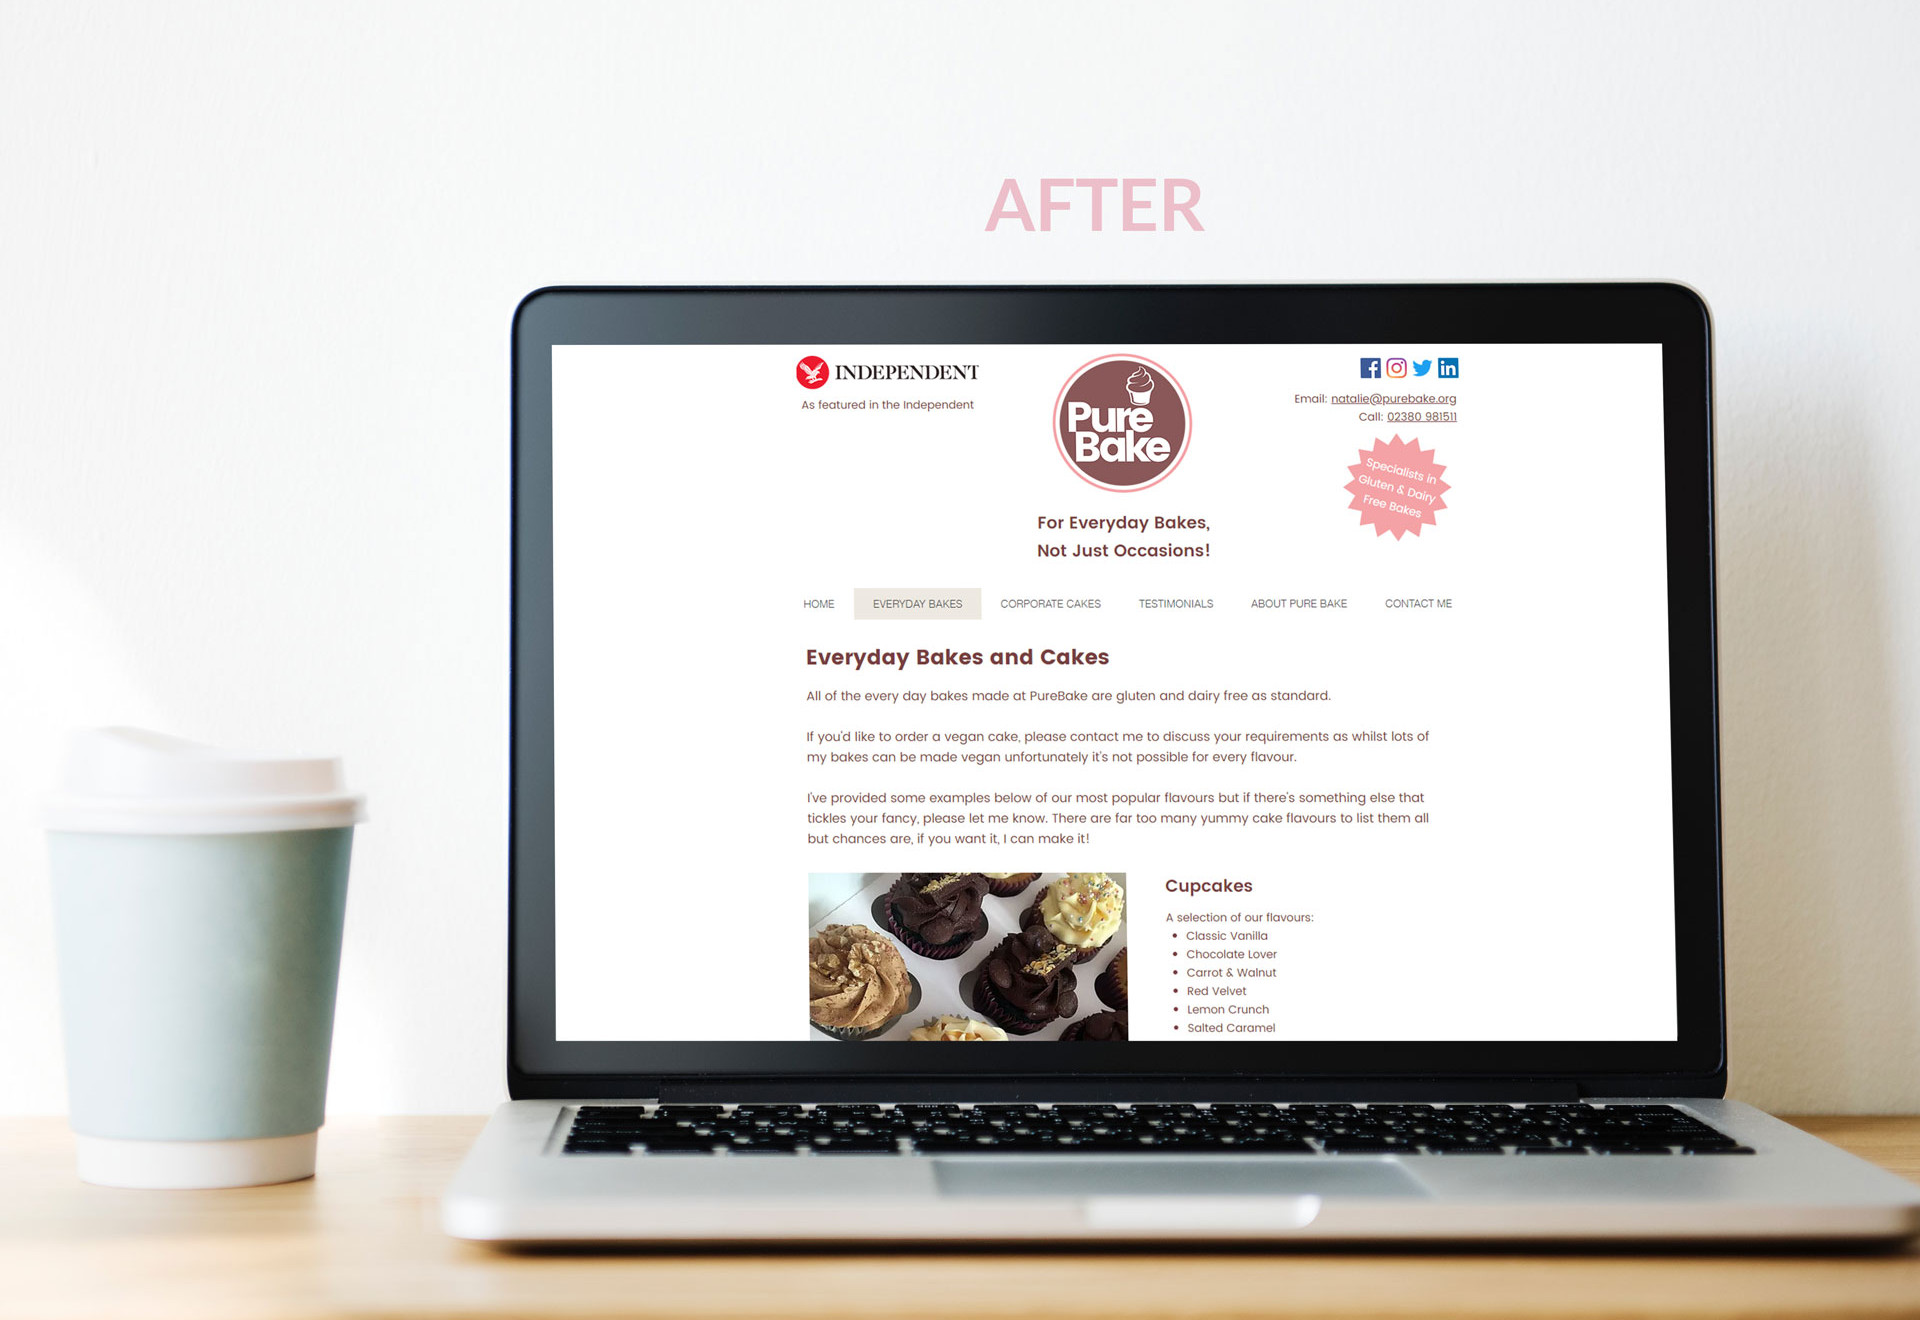 PureBake Everyday Bakes - Website Page After